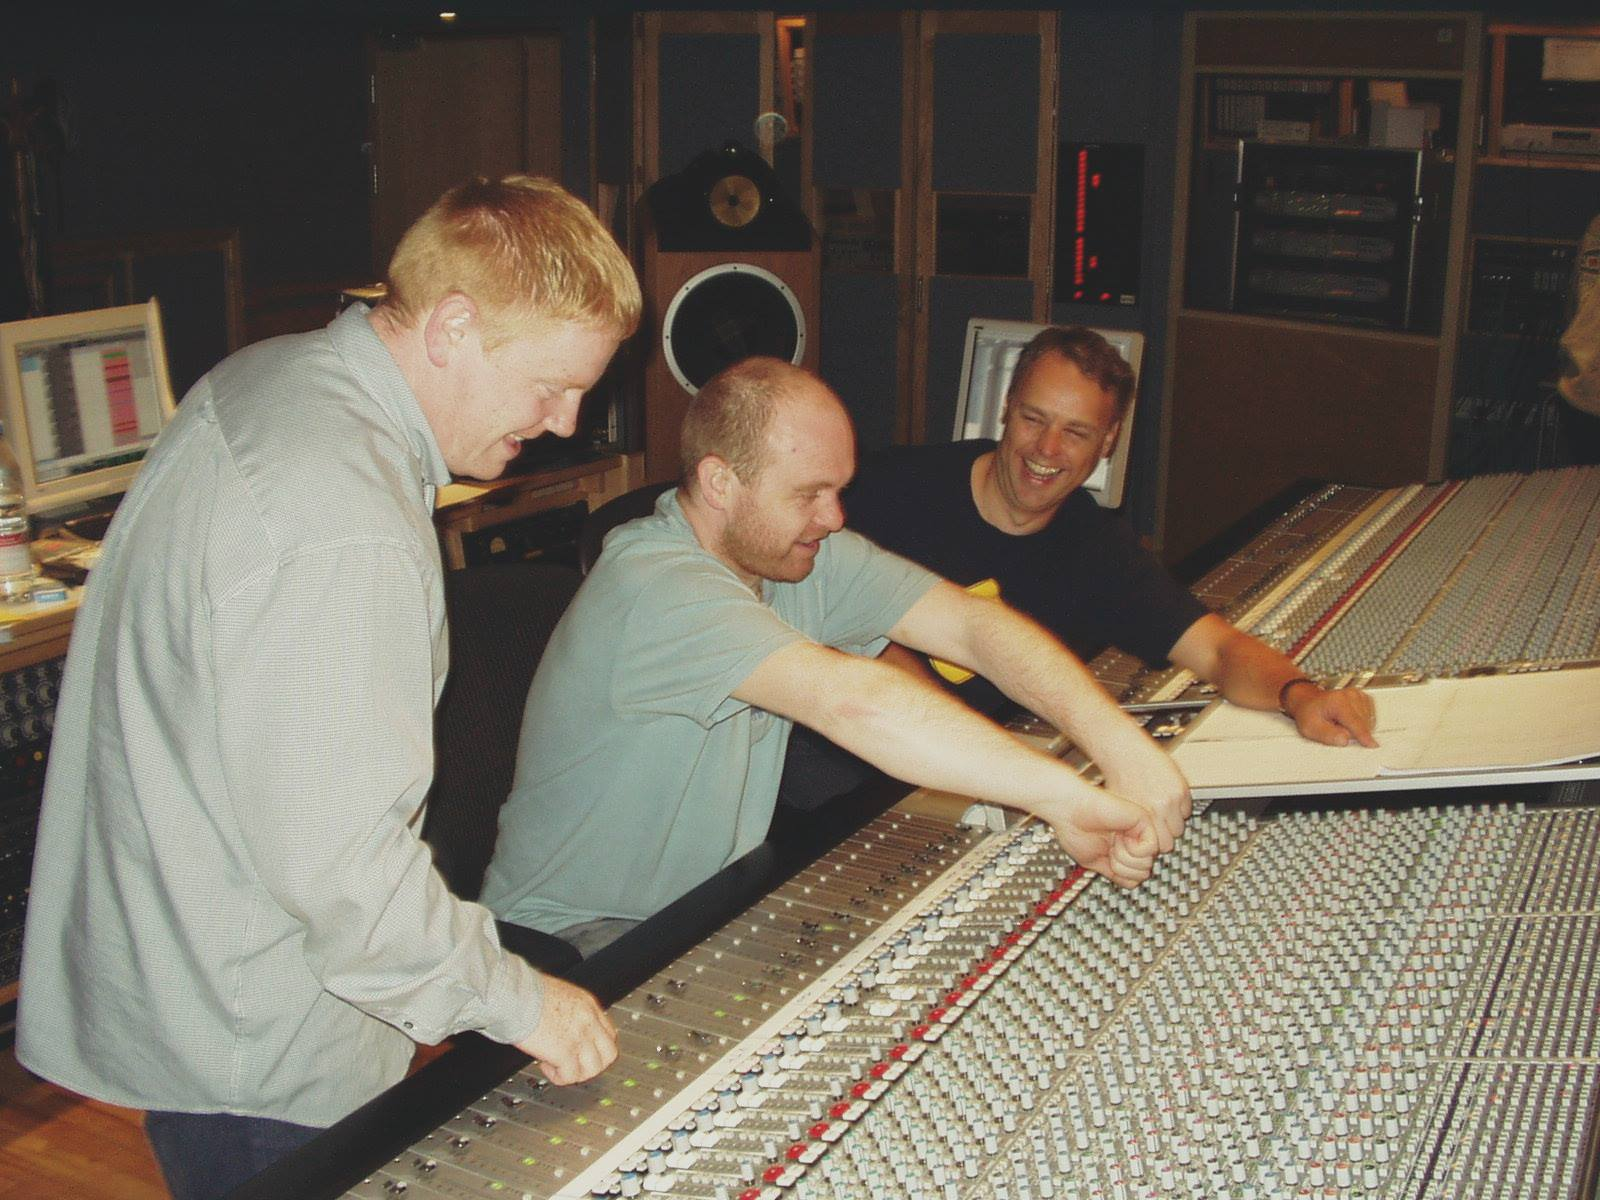 Peter and co. in the studio